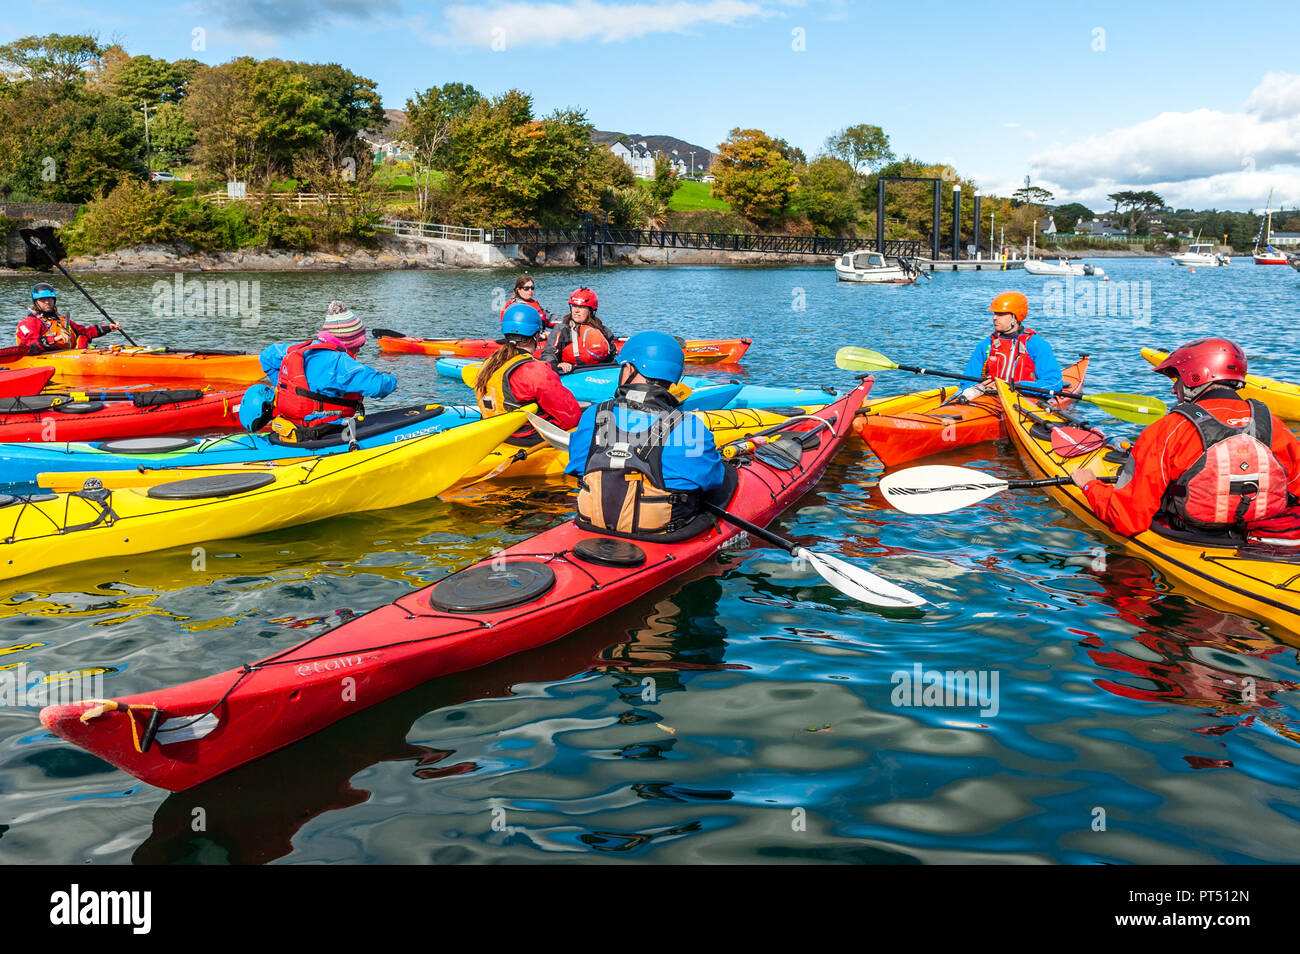 Schull, West Cork, Ireland. 6th Oct, 2018.  On a beautiful day in West Cork, kayakers prepares to go kayaking. Today's activities culminate this evening in a dinner dance at the Schull Harbour Hotel. Credit: Andy Gibson/Alamy Live News. - Stock Image